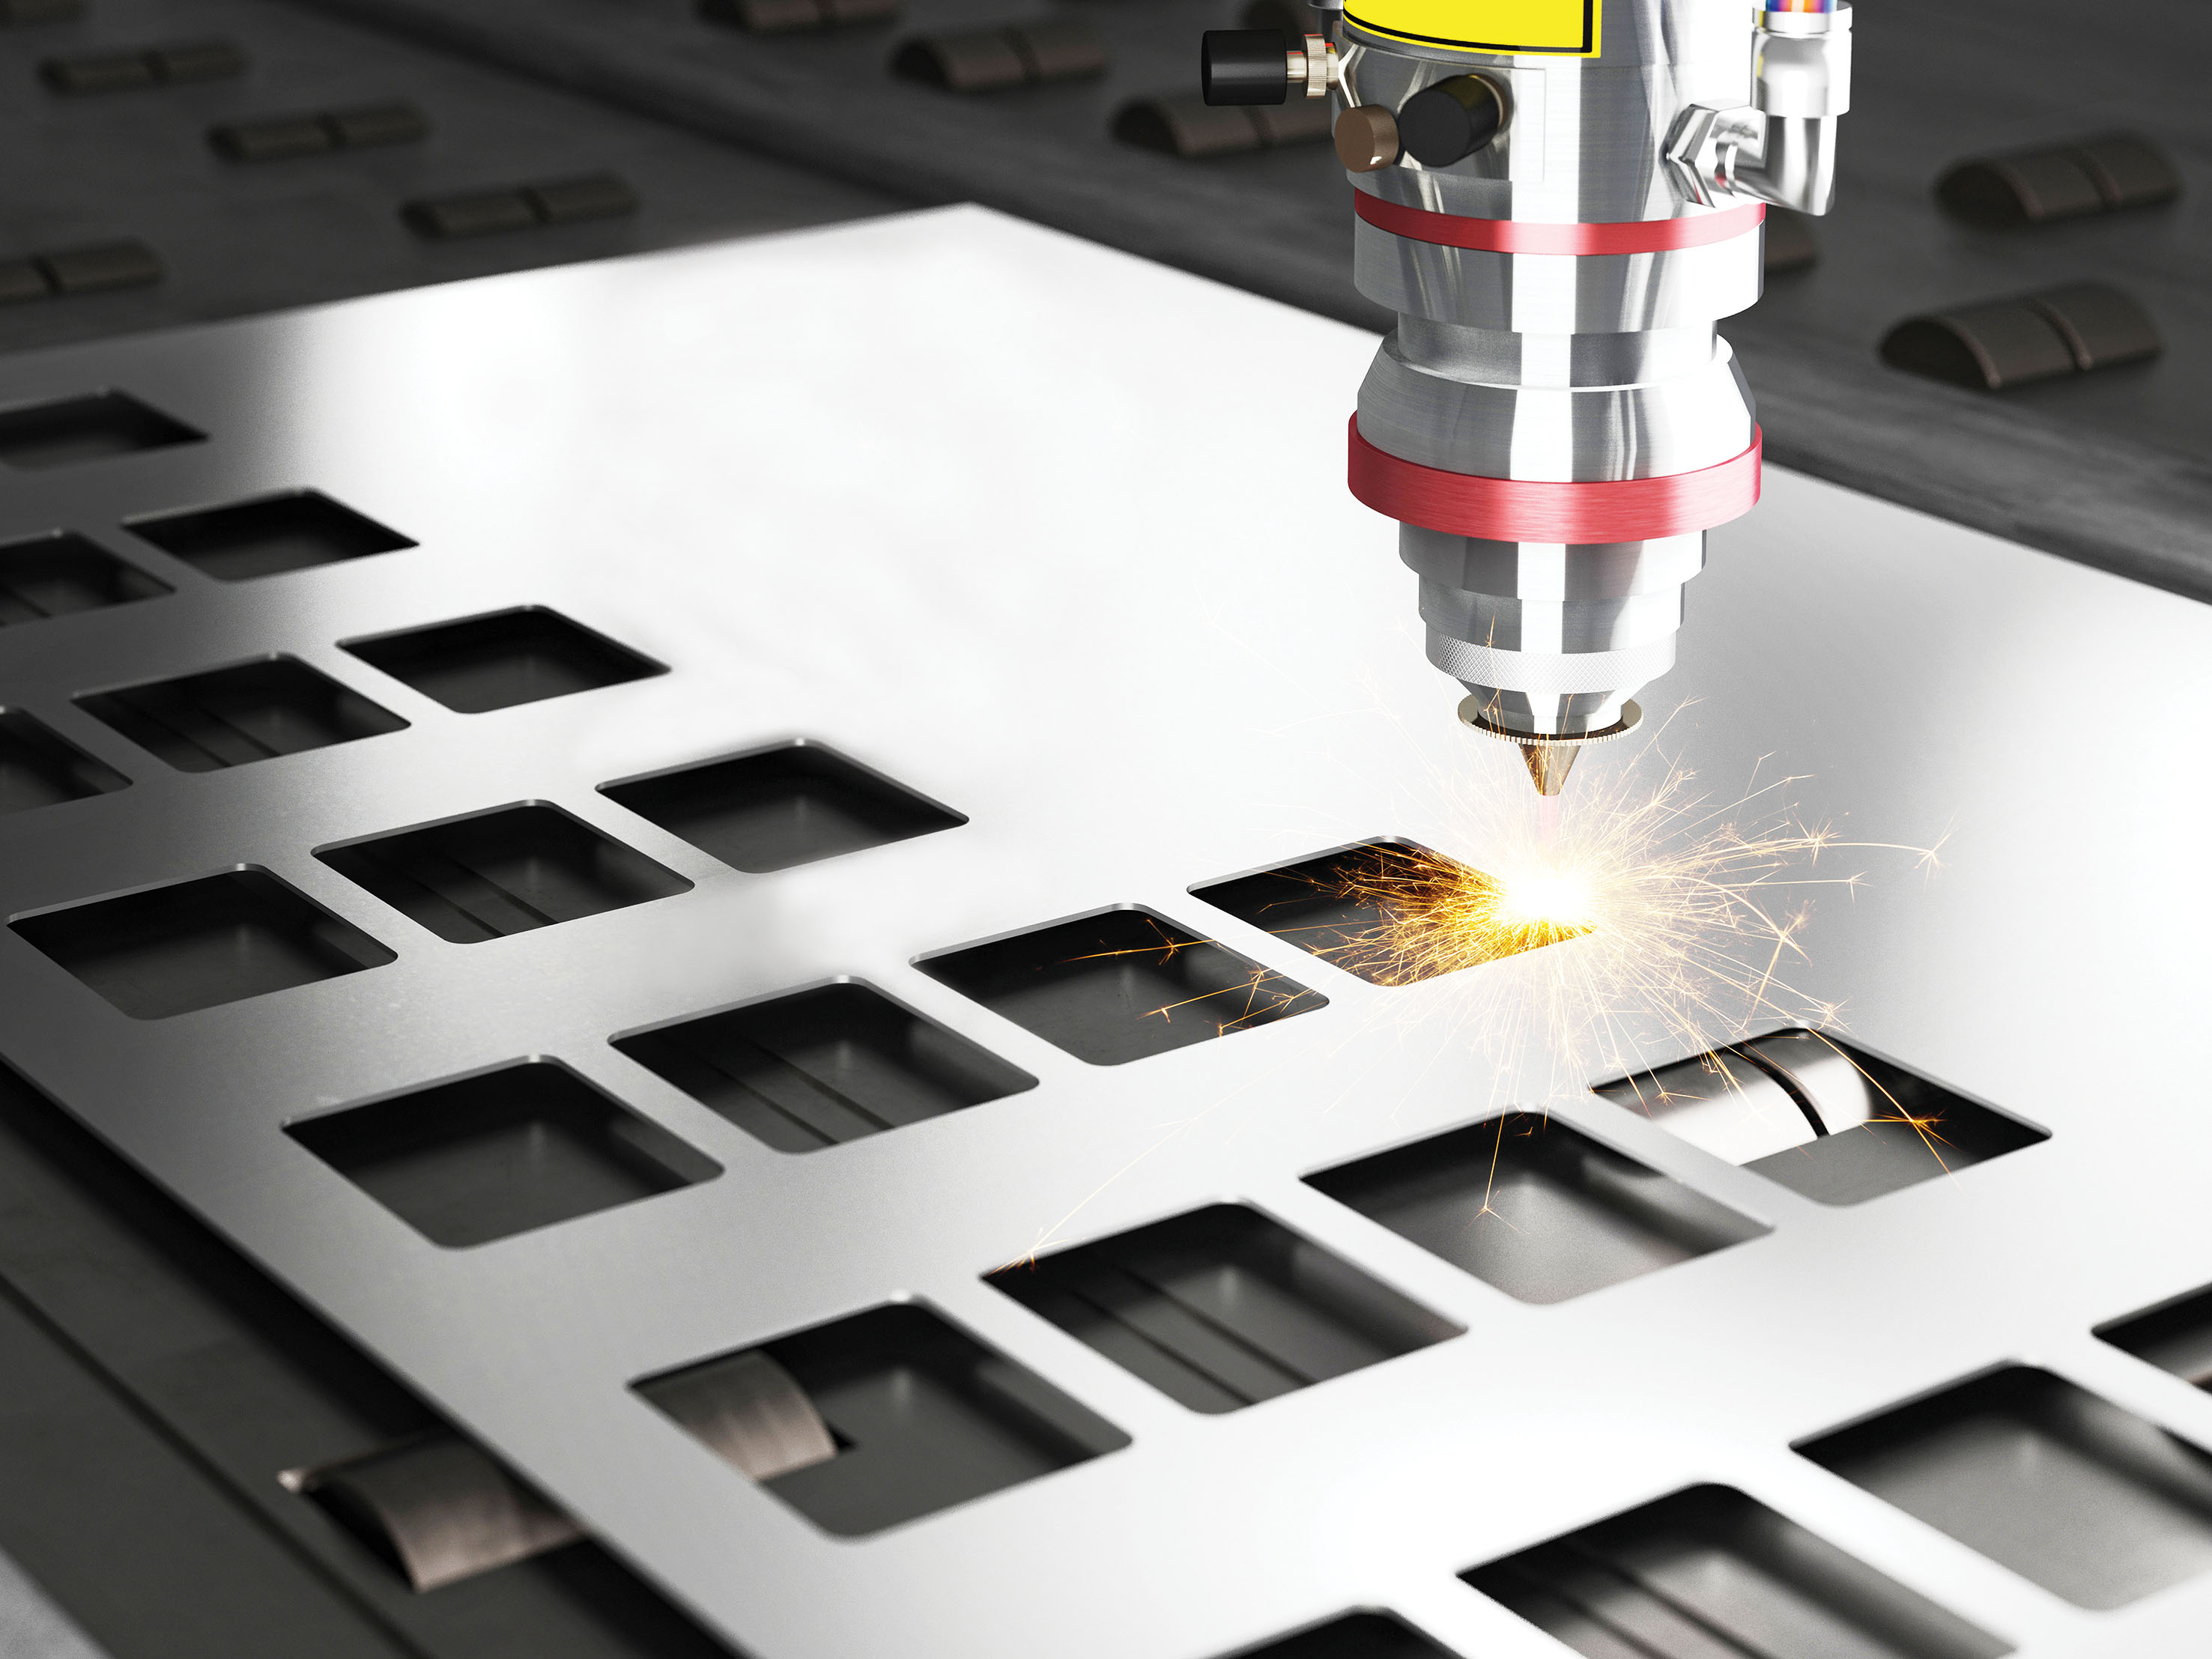 Metal Machinery 2020: The Greek Industry and the challenge of Industry 4.0